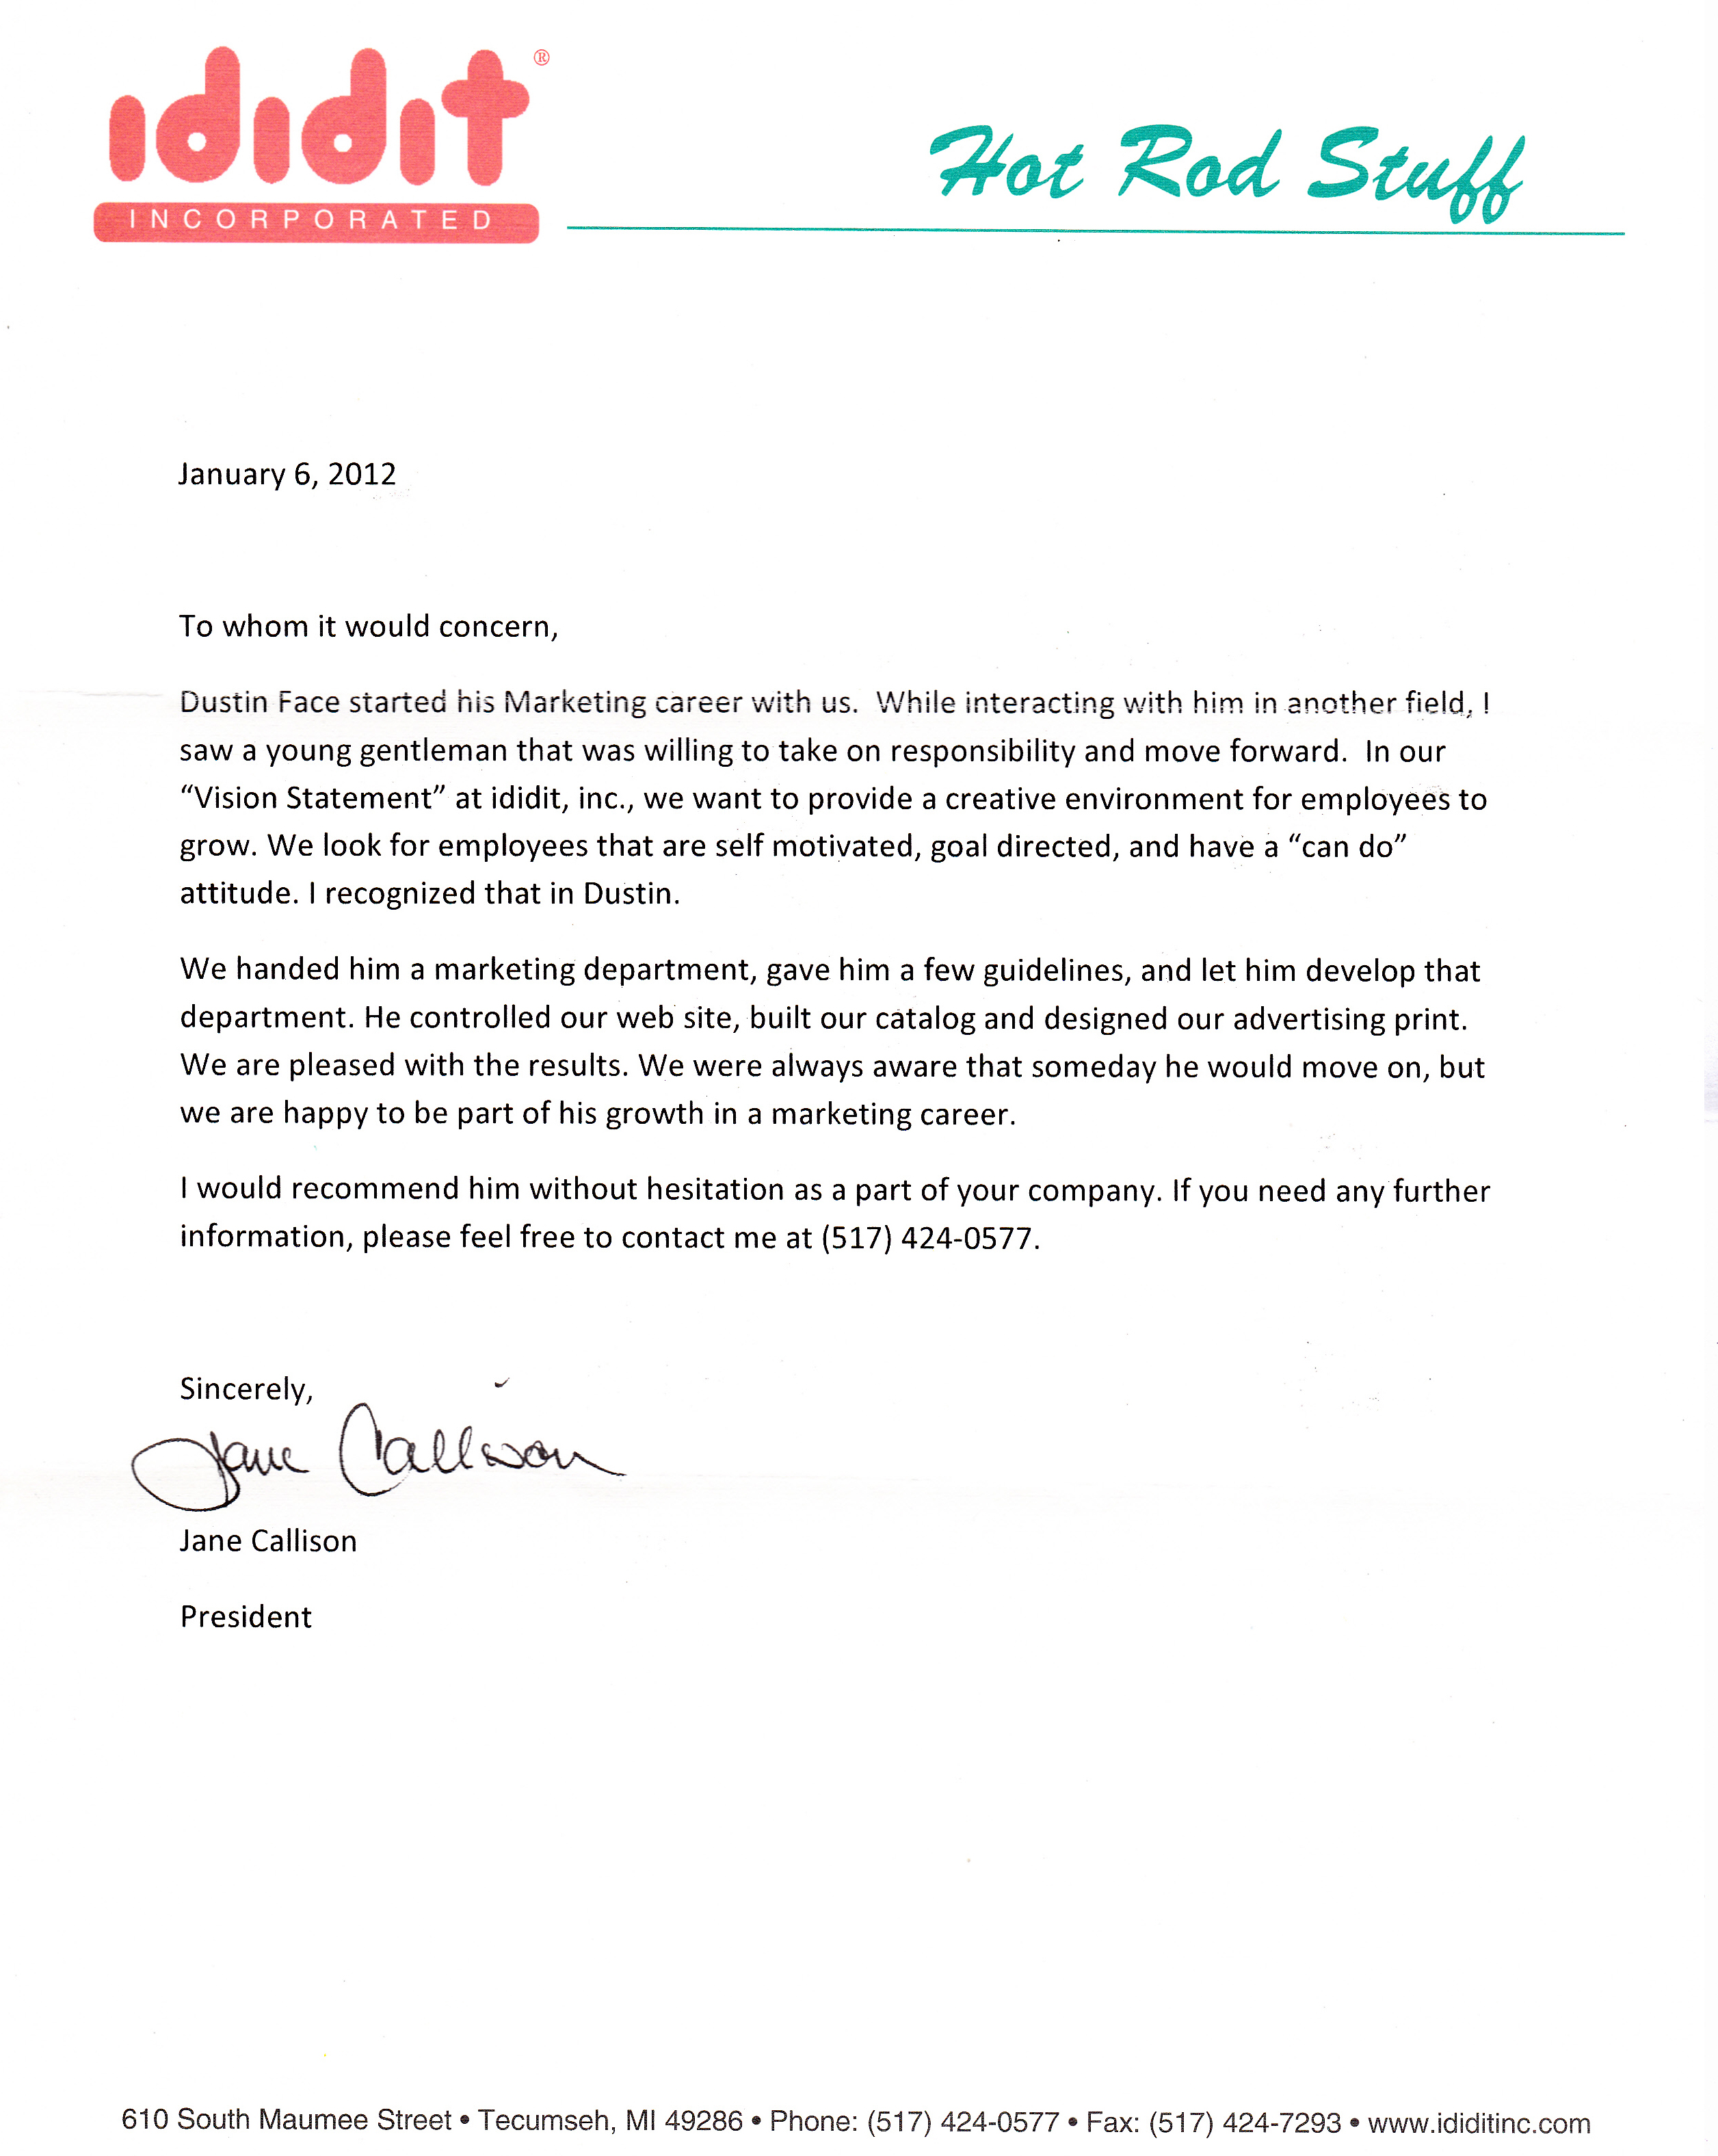 Letter of Recommendation ididit incorporated - dustinface.com ...